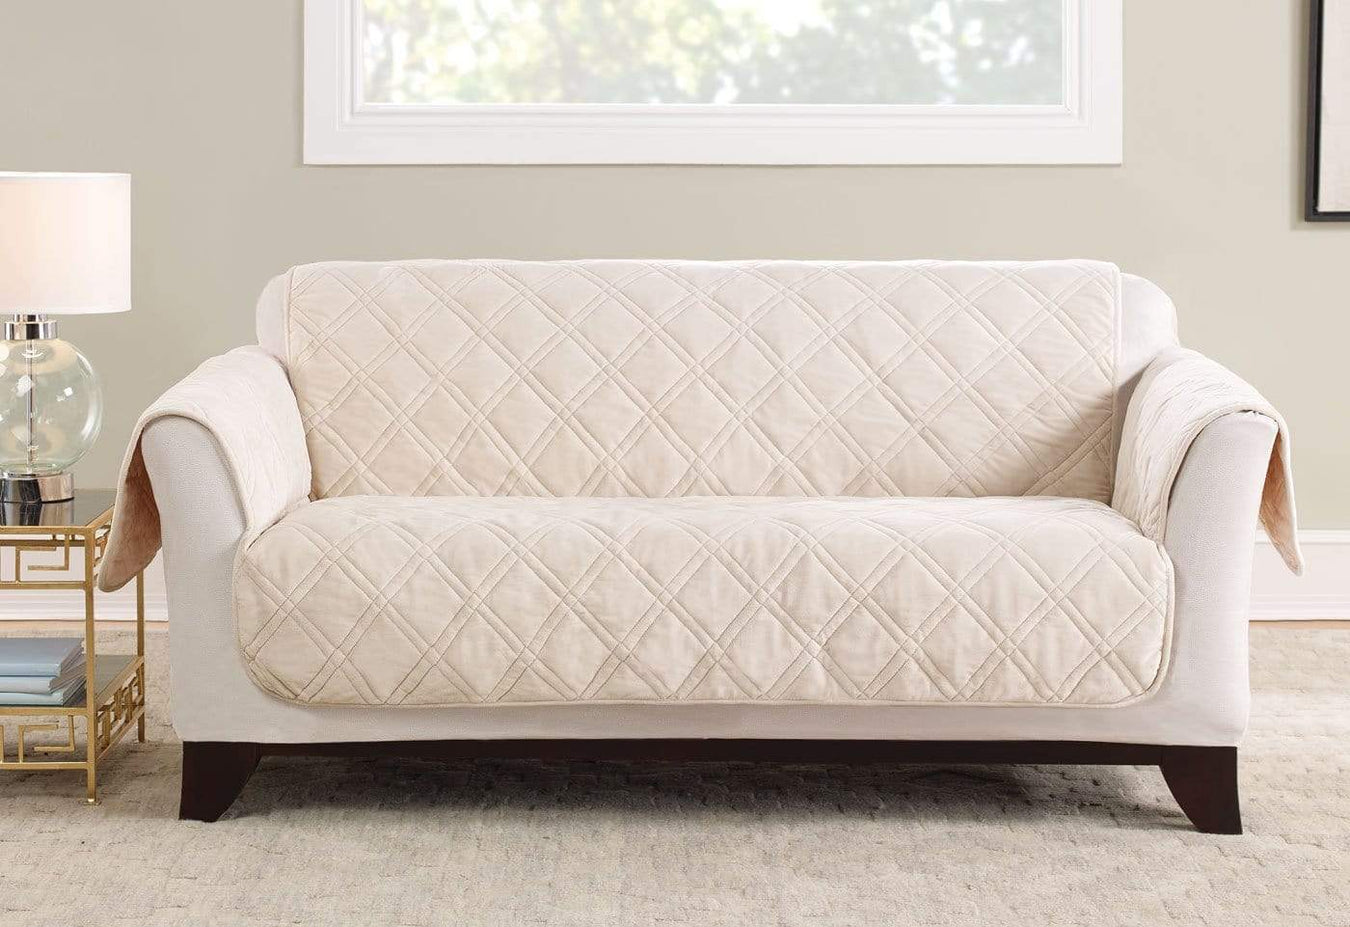 Triple Protection Loveseat Furniture Cover